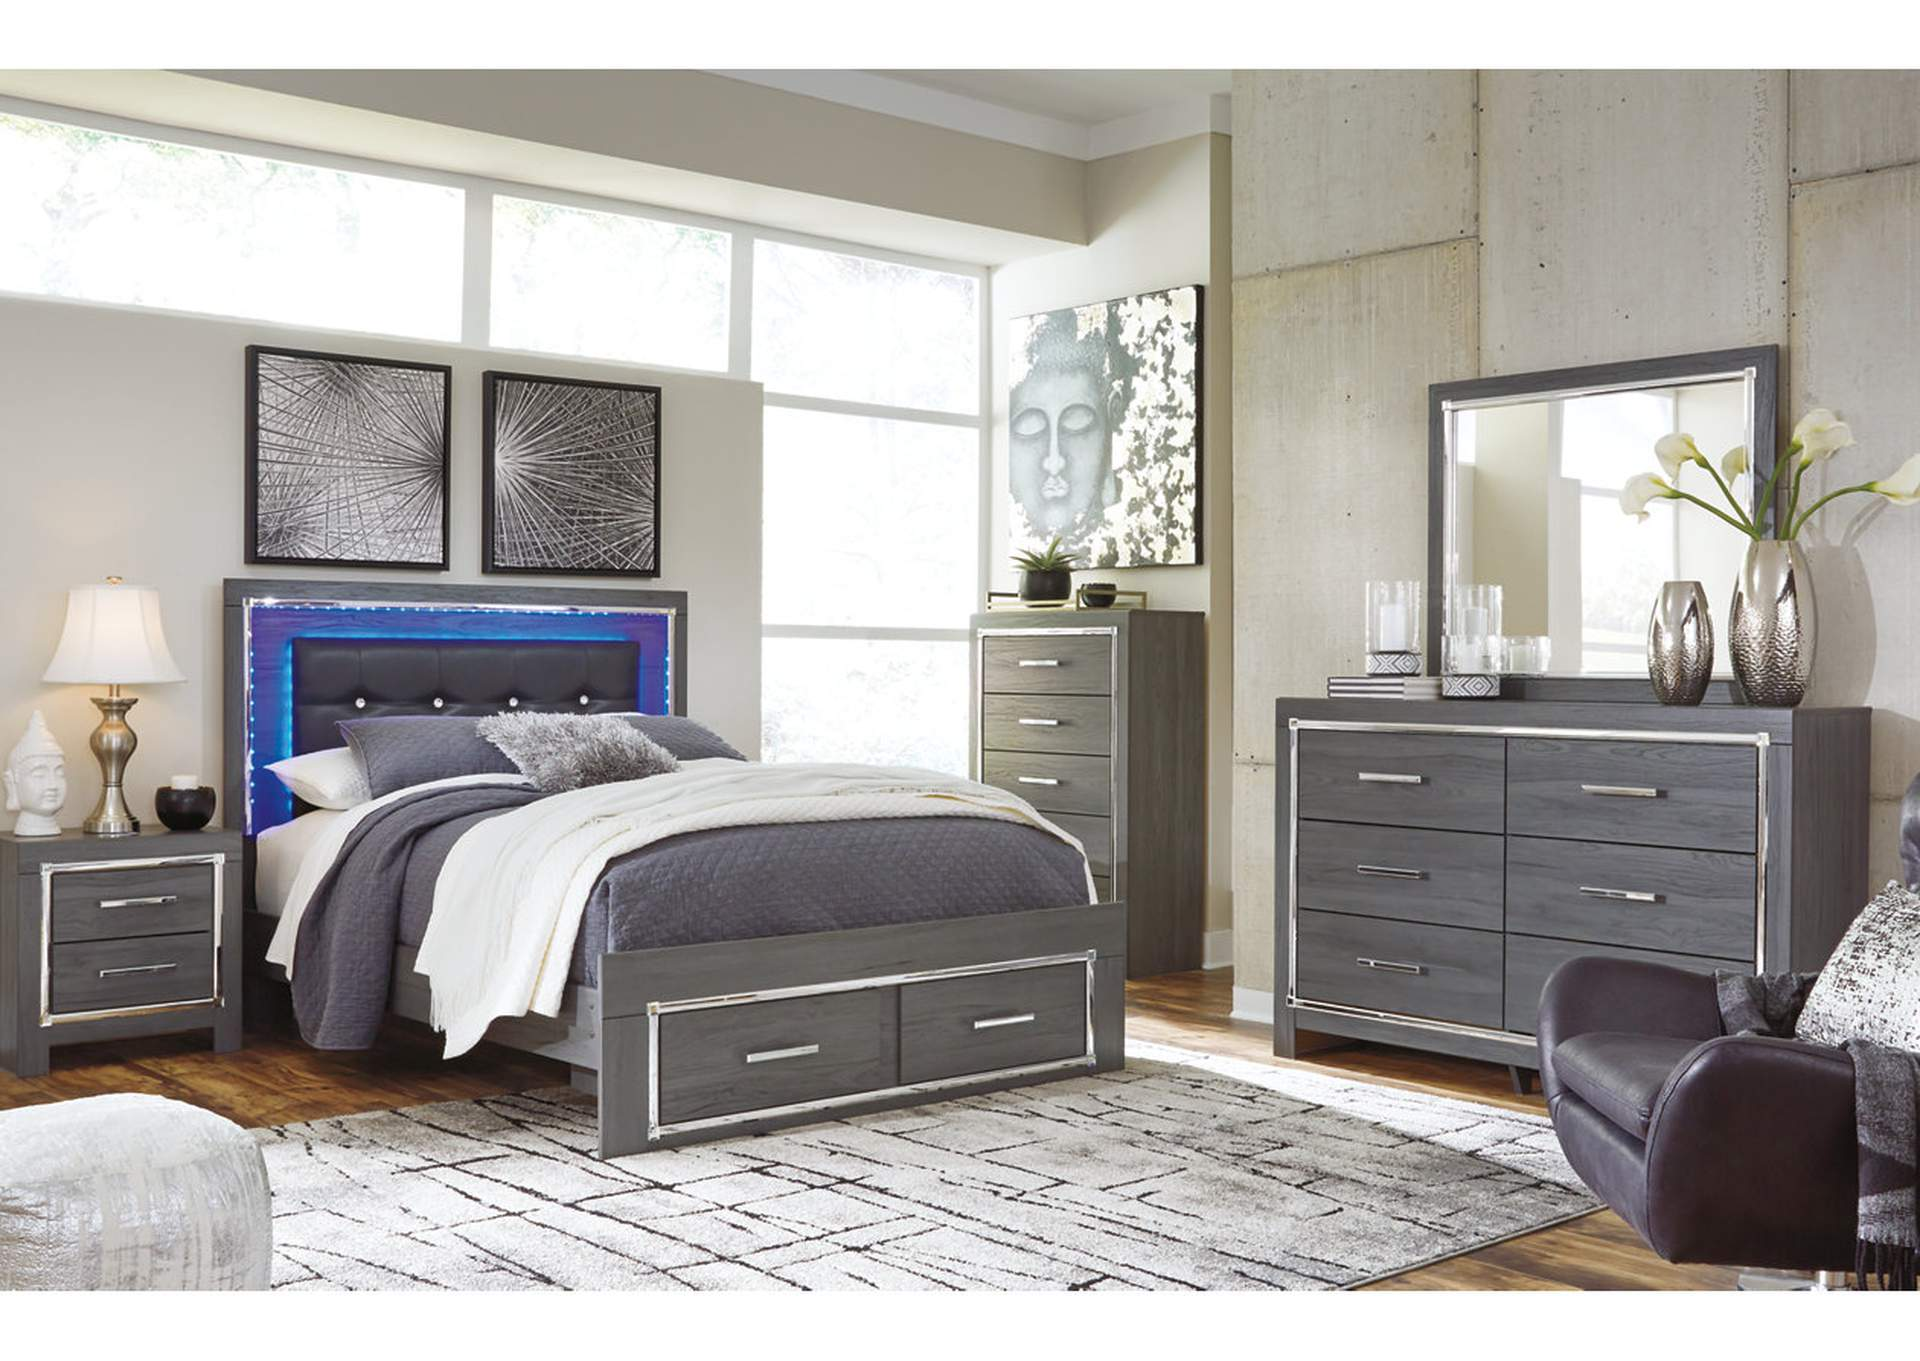 Lodanna Queen Panel Bed with 2 Storage Drawers, Dresser and Mirror,Signature Design By Ashley